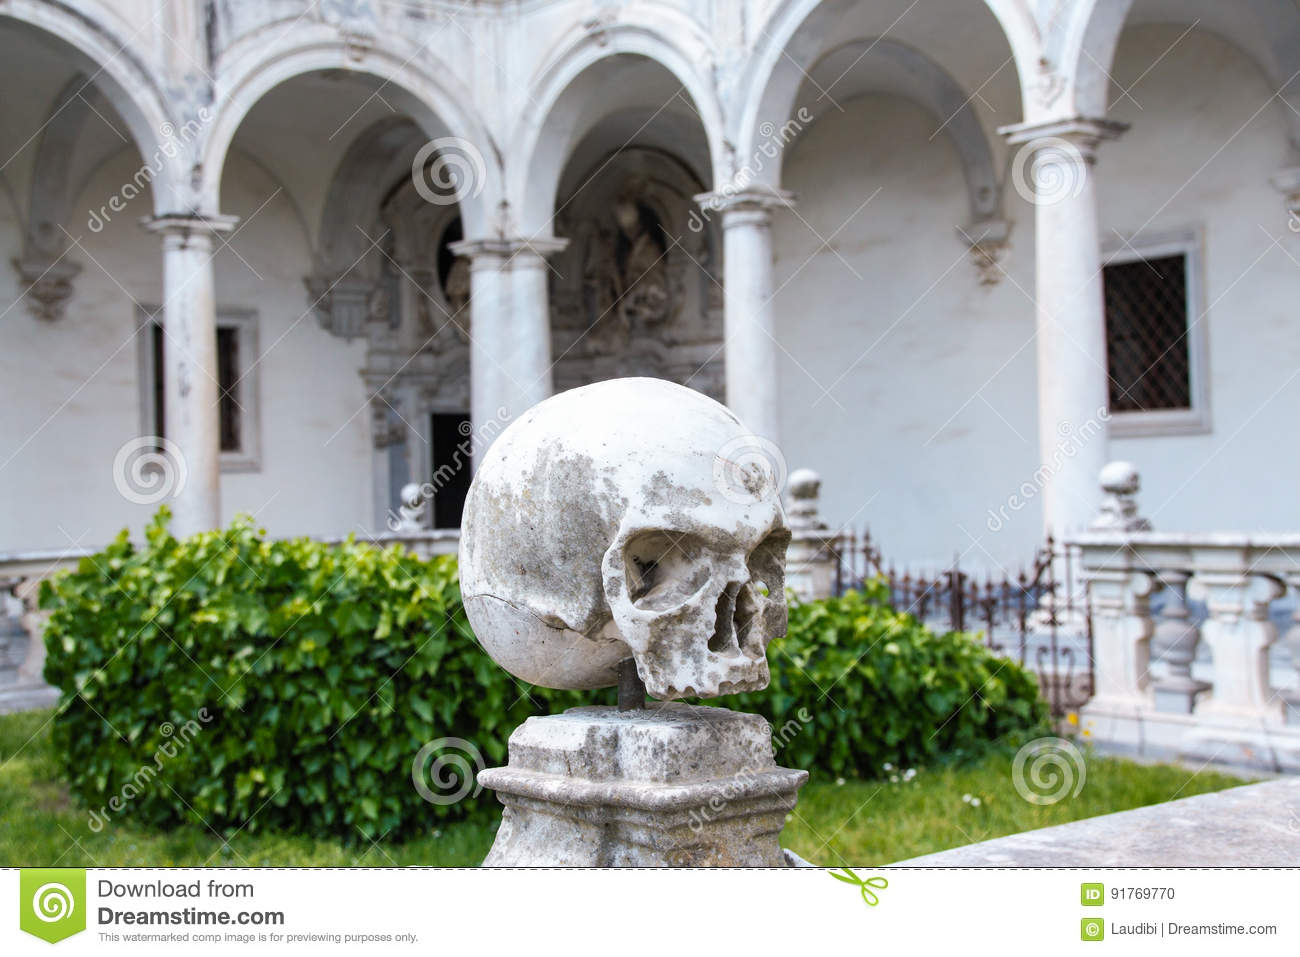 The Cloister Of San Martino Chartreuse In Naples Stock Photo Image Of Martino Crown 91769770